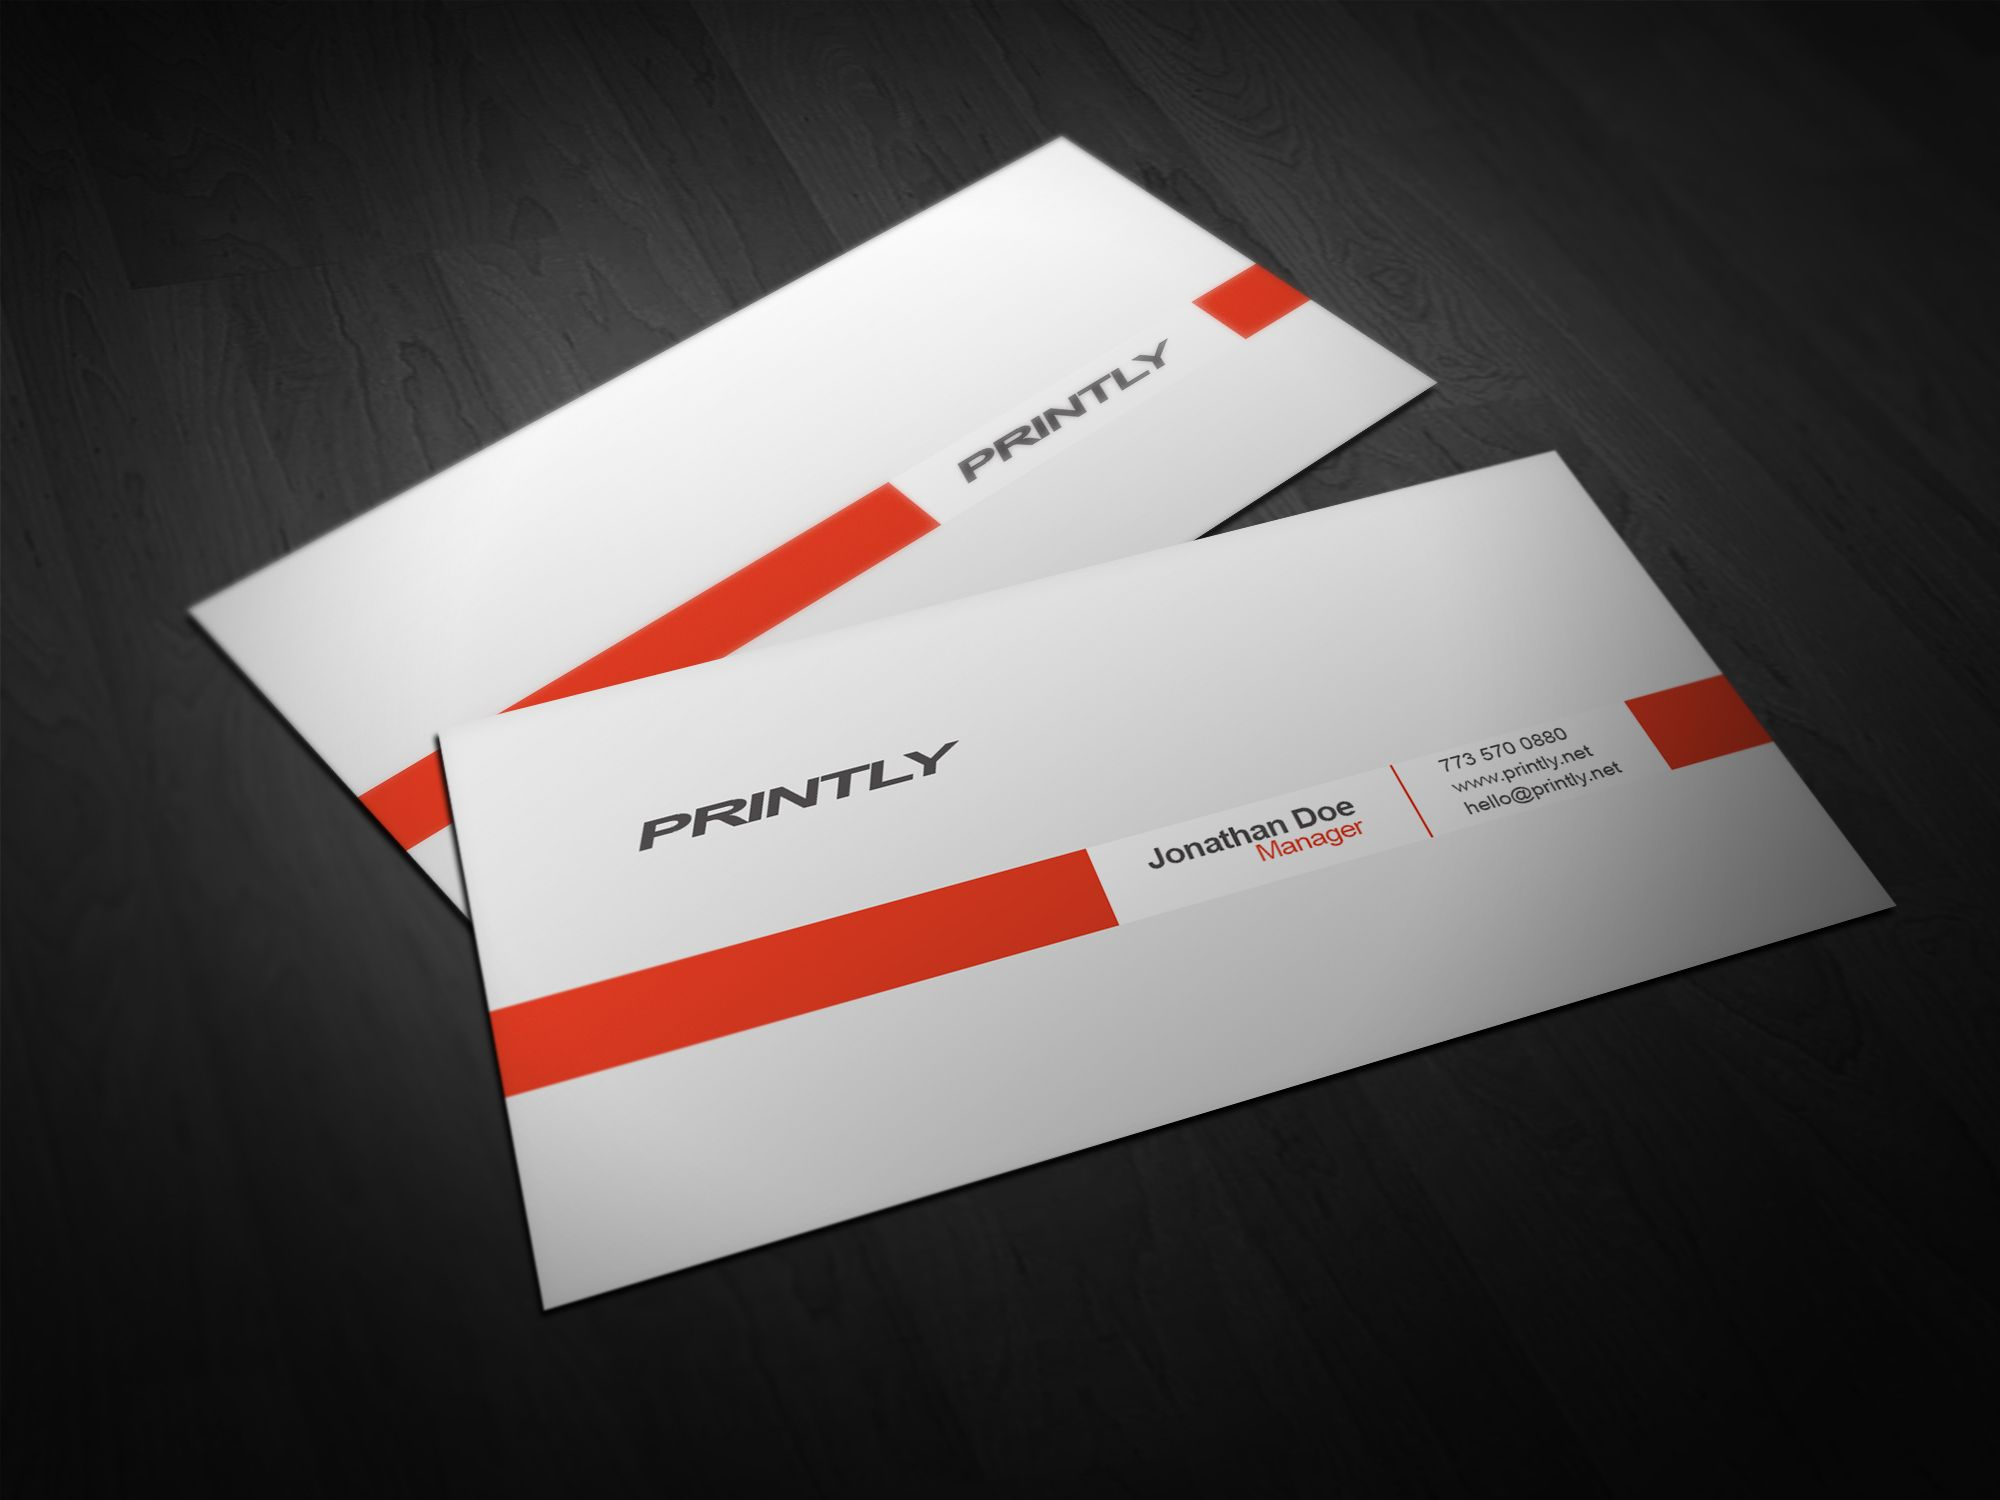 Free Printly PSD Business Card Template PRINTLY Design - Free downloadable business card templates